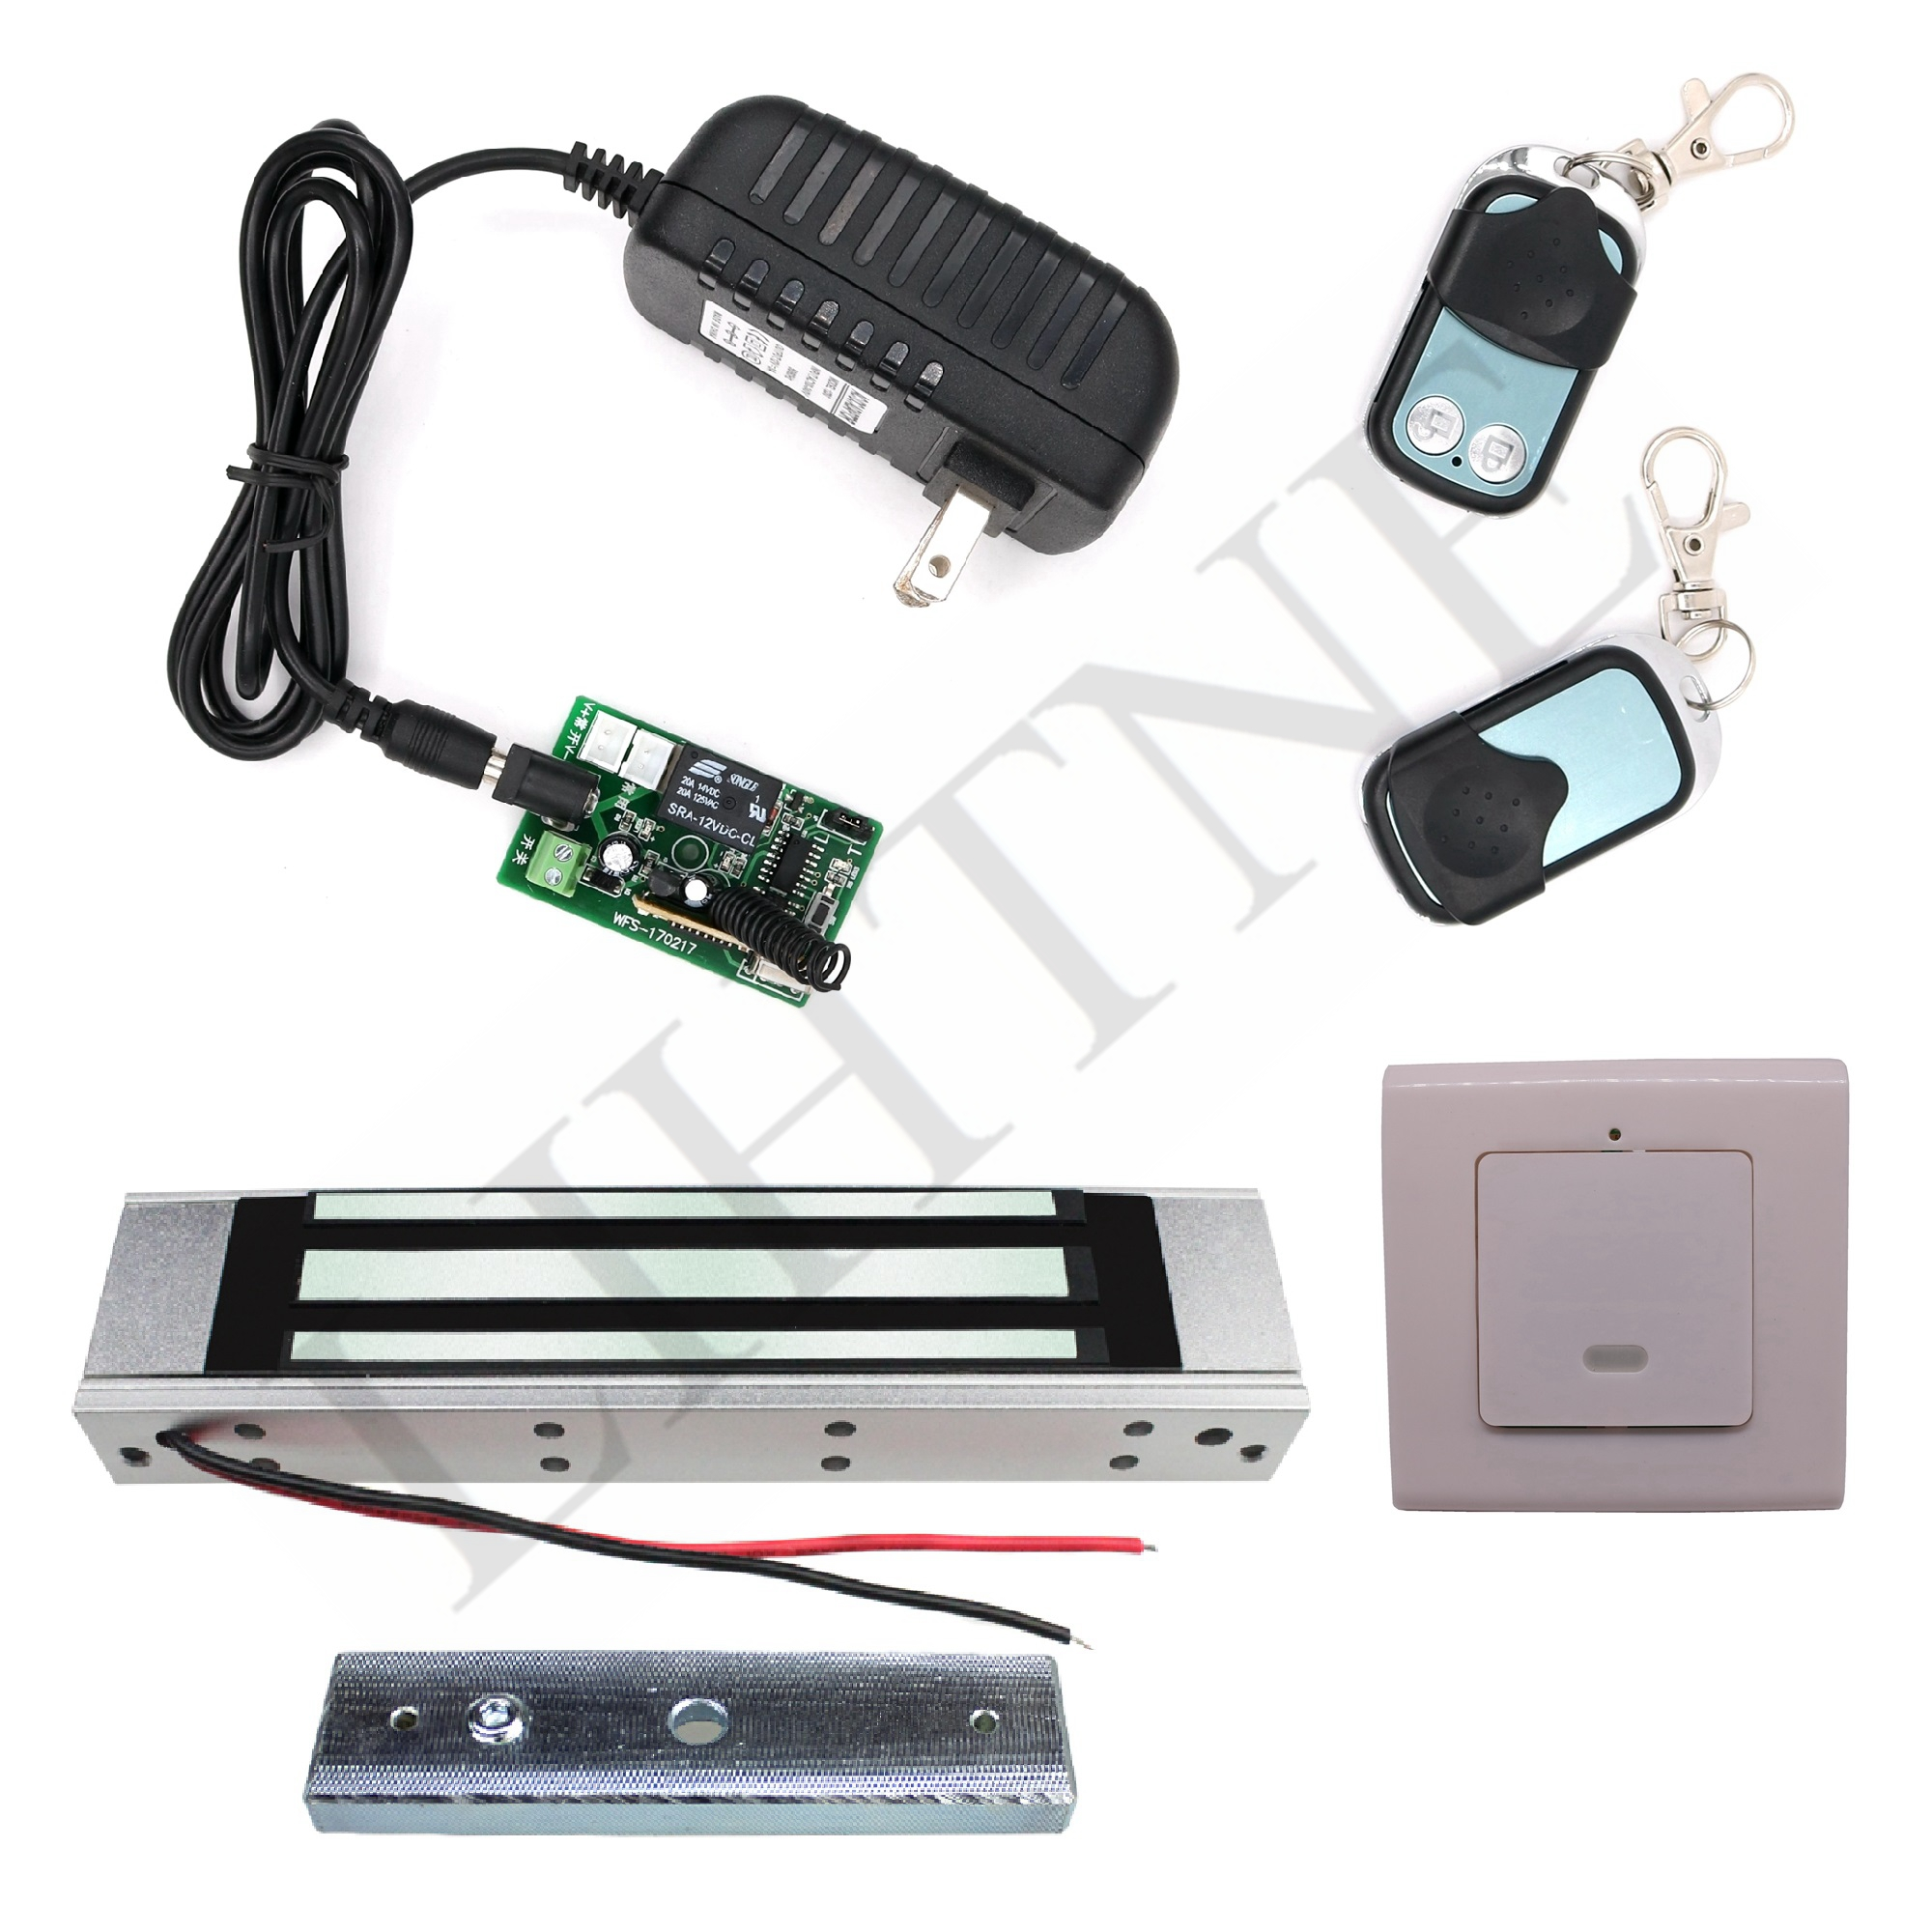 180Kg 350Lbs 315Mhz Wireless Remote Control Magnetic Lock with 2 Remote Handle Wireless Exit Button 3m Cable diy lock system metal keypadl k2 electric control lock 3a power supply exit button 10pcs key cards wireless remote control